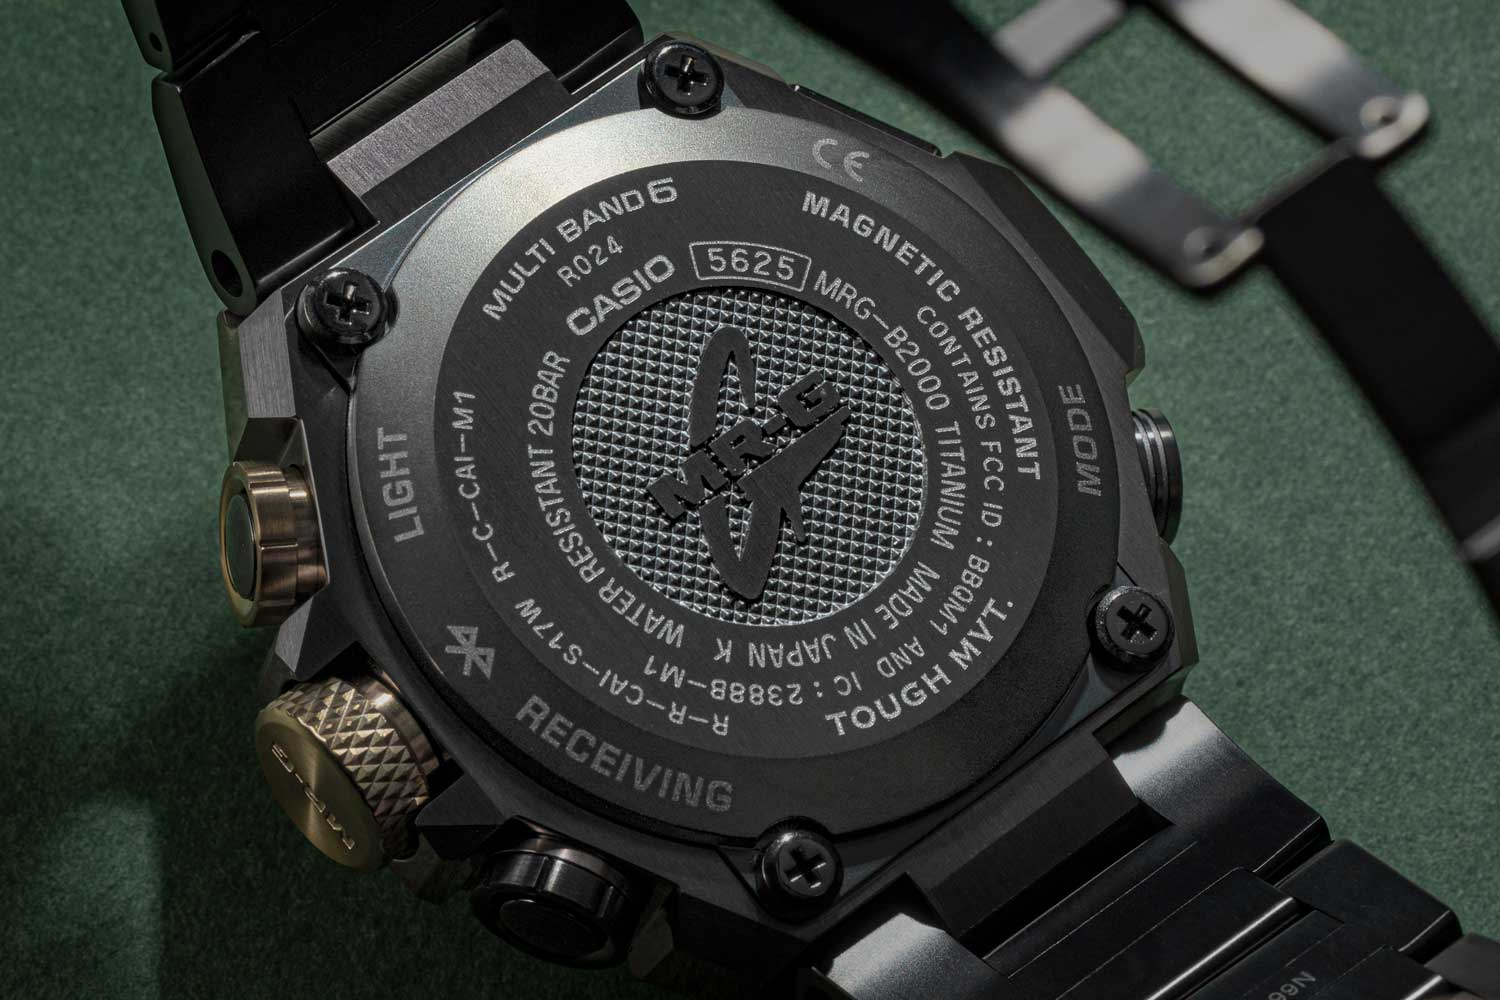 """The watch has a """"Triple G Resist"""" solar-powered quartz movement, which has been tested to withstand vibrations, centrifugal force, and, of course, shocks (©Revolution)"""